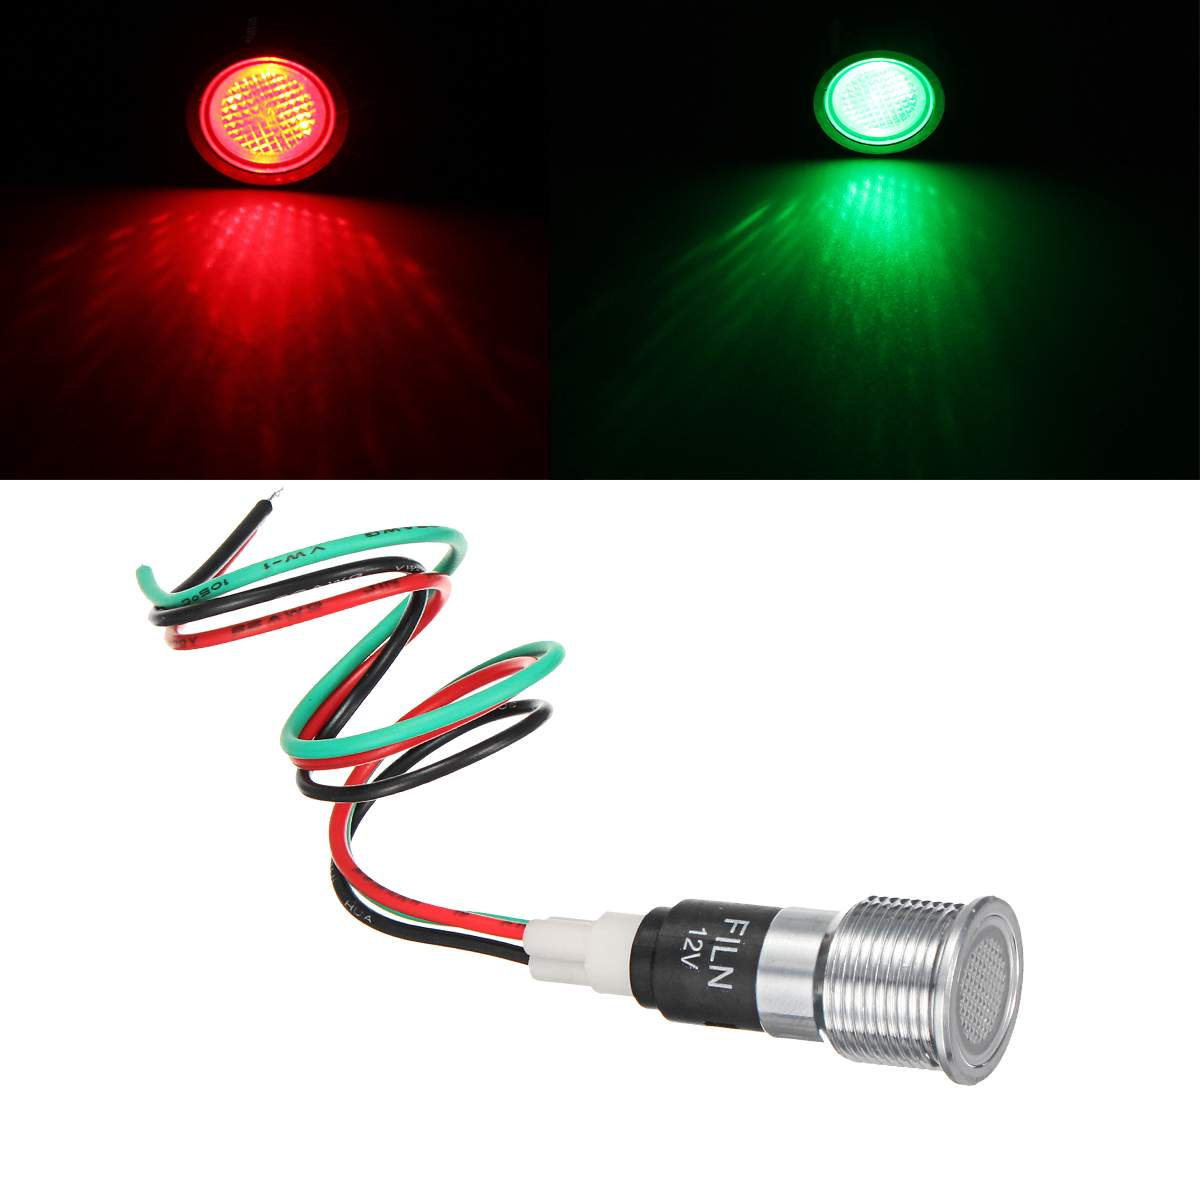 16mm Metal 12V LED Indicator Light Waterproof Signal Lamp Red Green Dual Color Warning Indicator Light With Wire For Truck Yacht